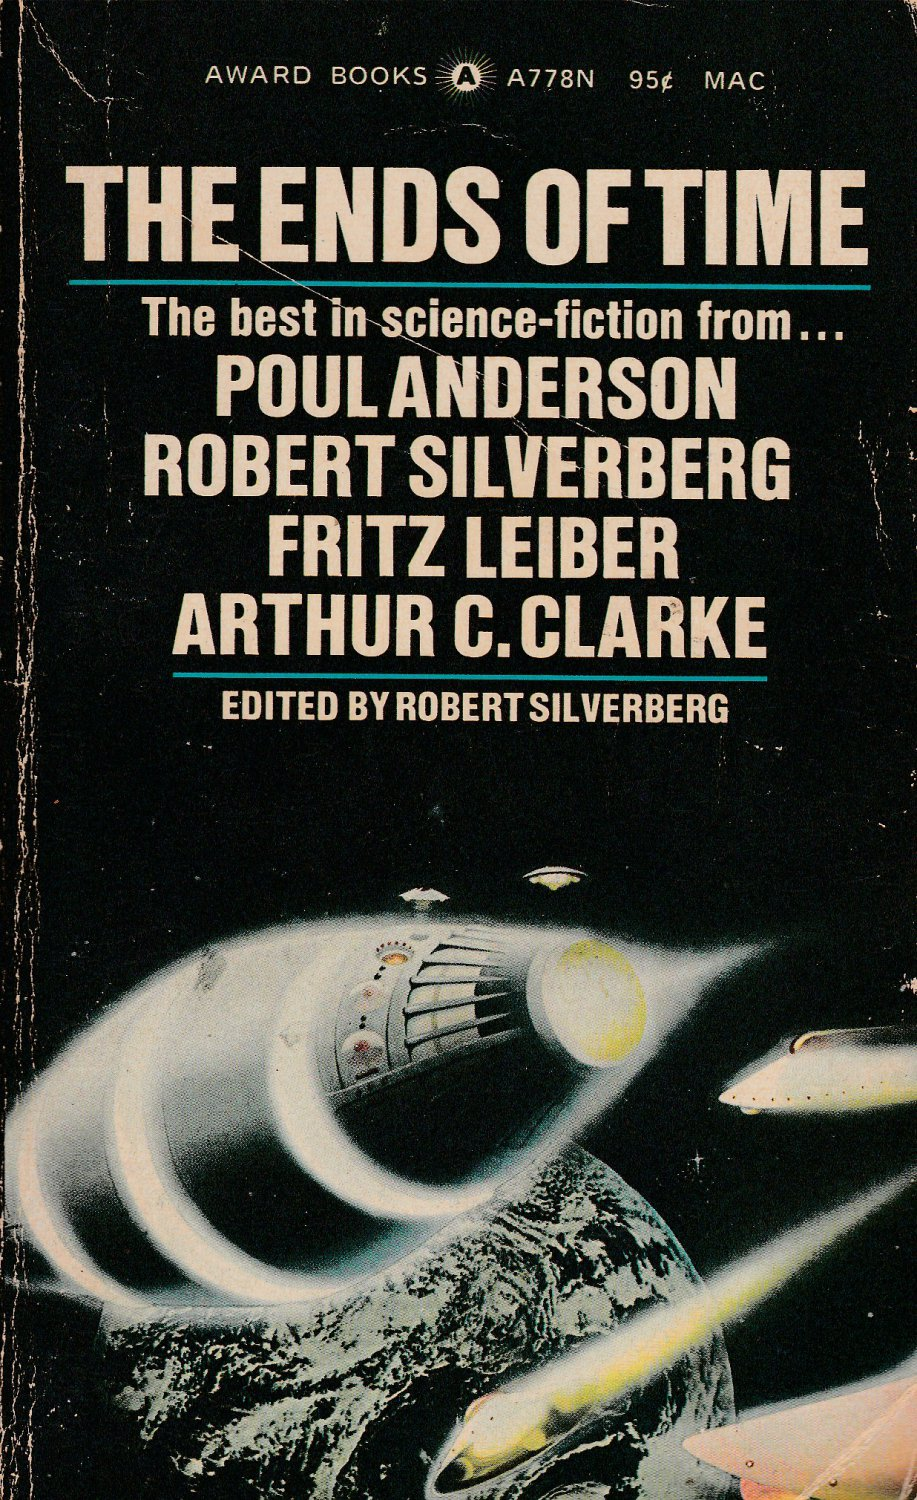 The Ends of Time edited by Robert Silverberg